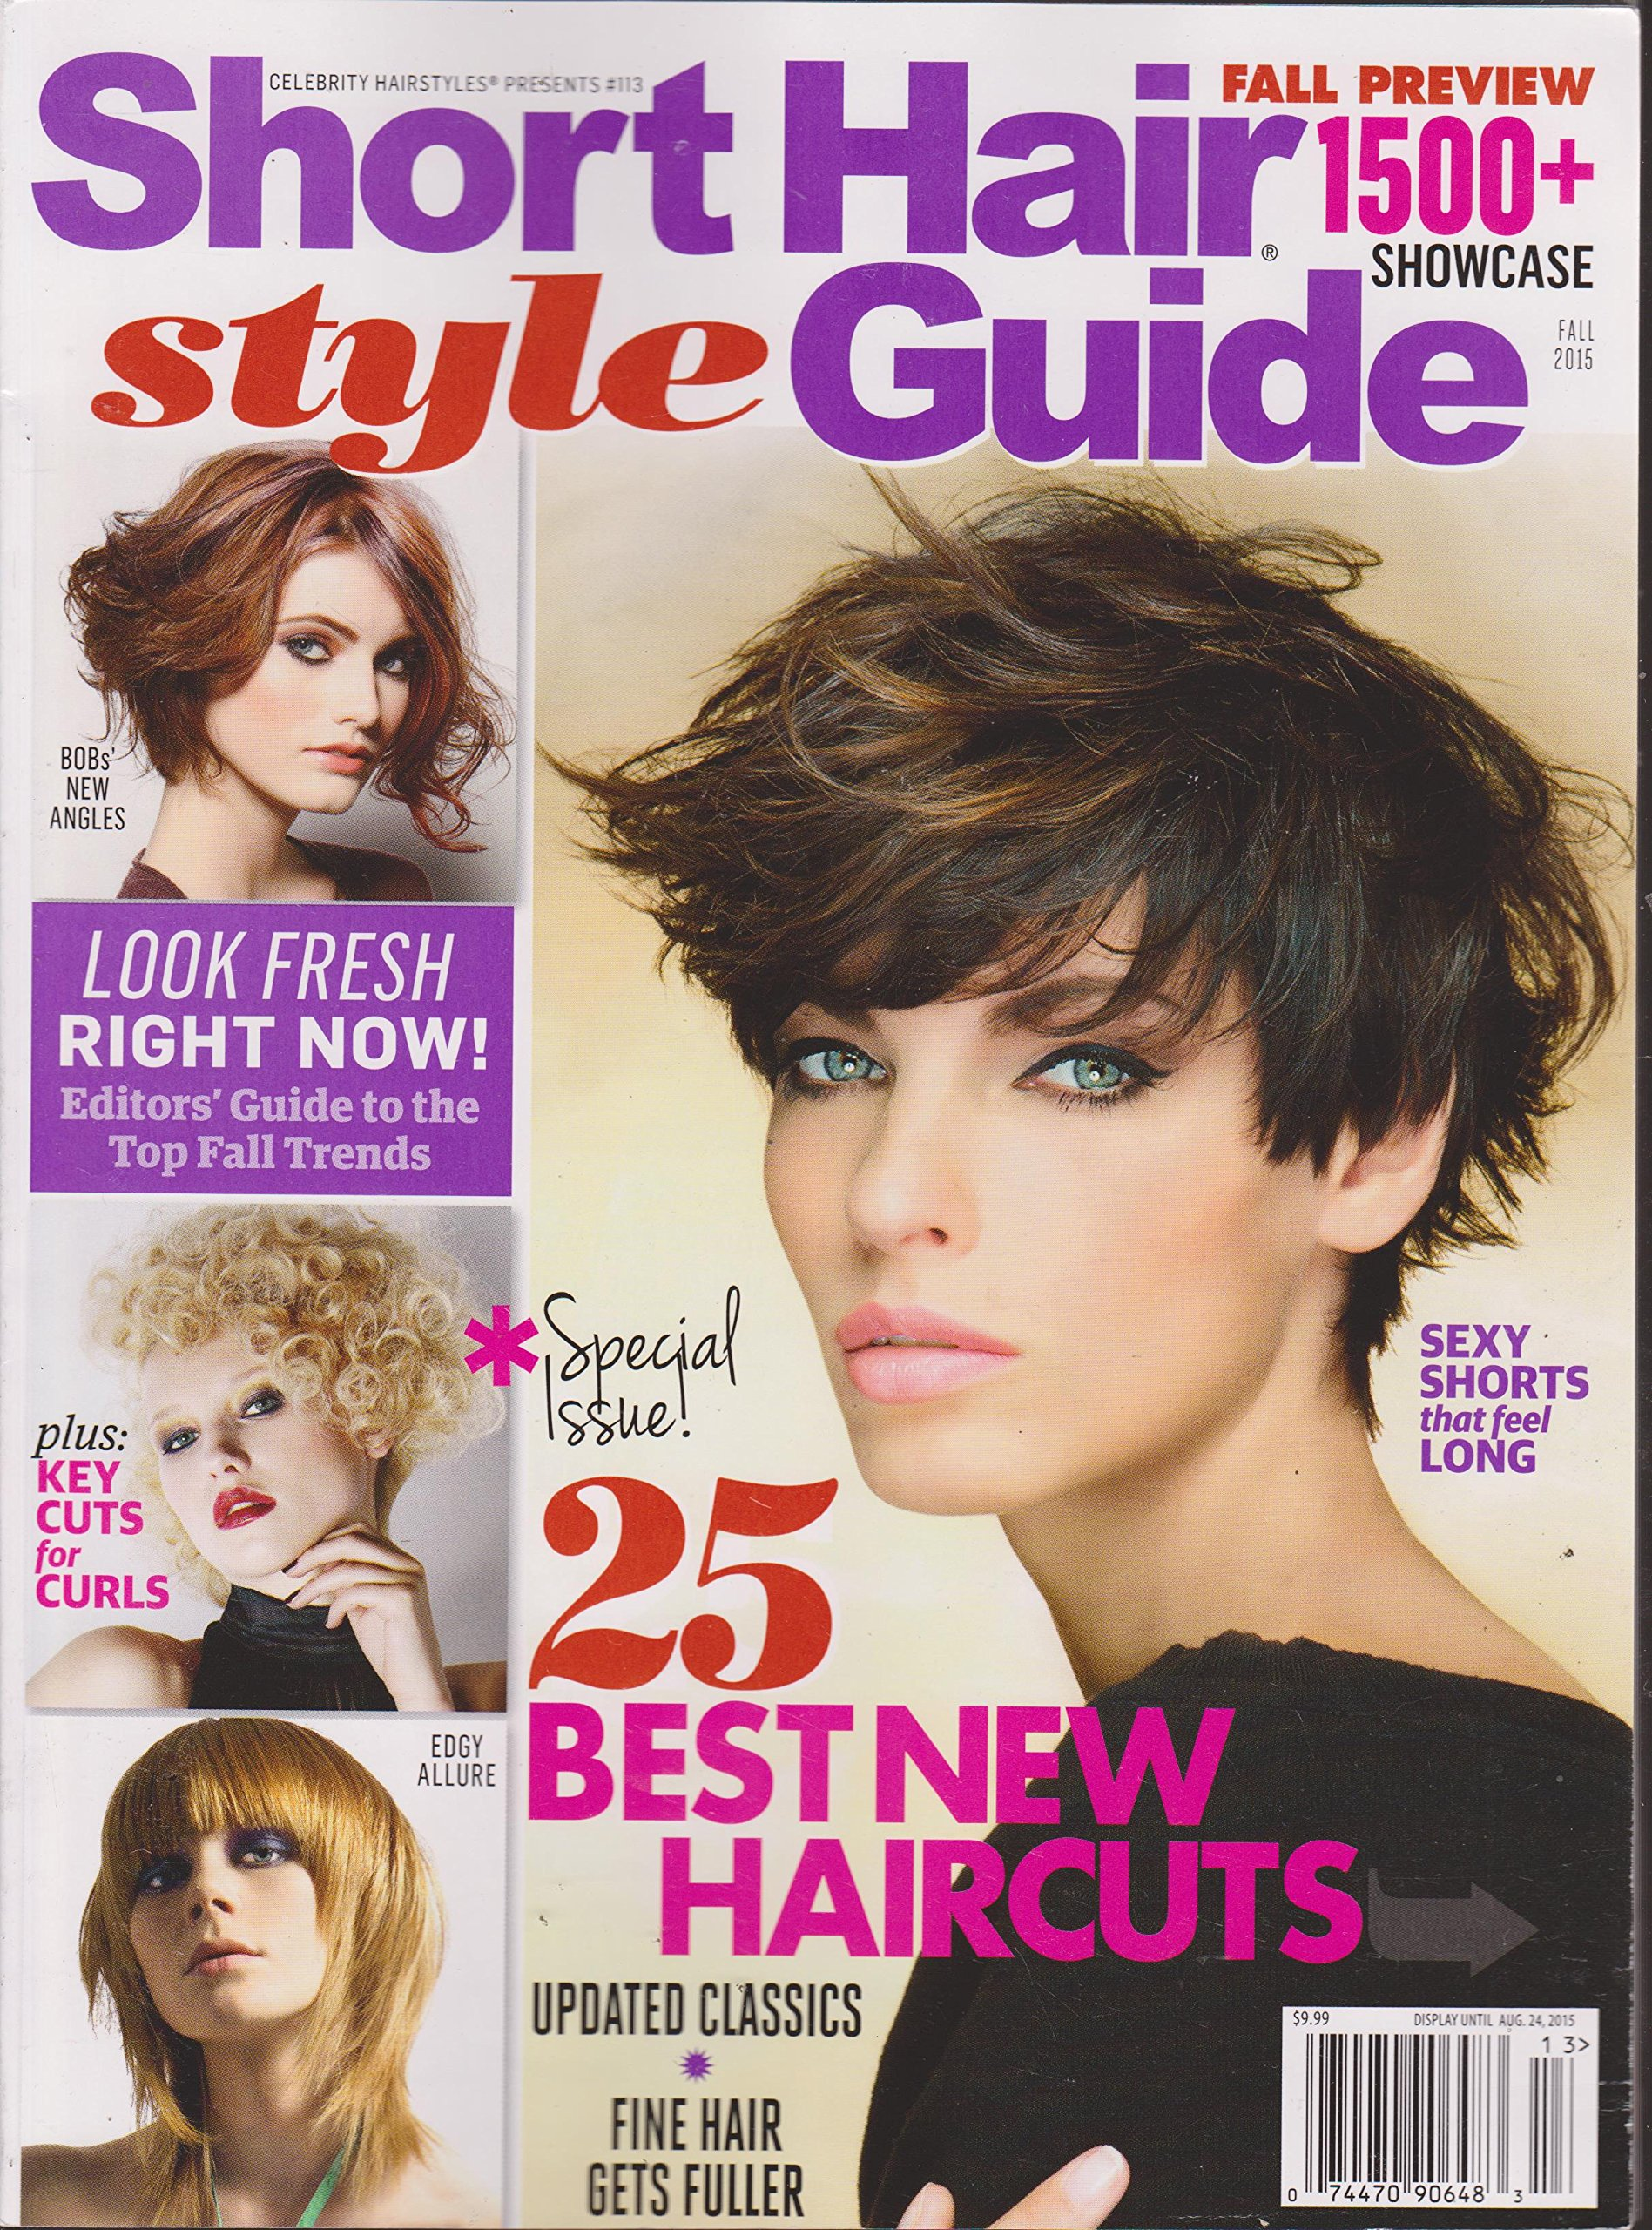 Celebrity Hairstyles Presents #113 Short Hair Style Guide Magazine ...